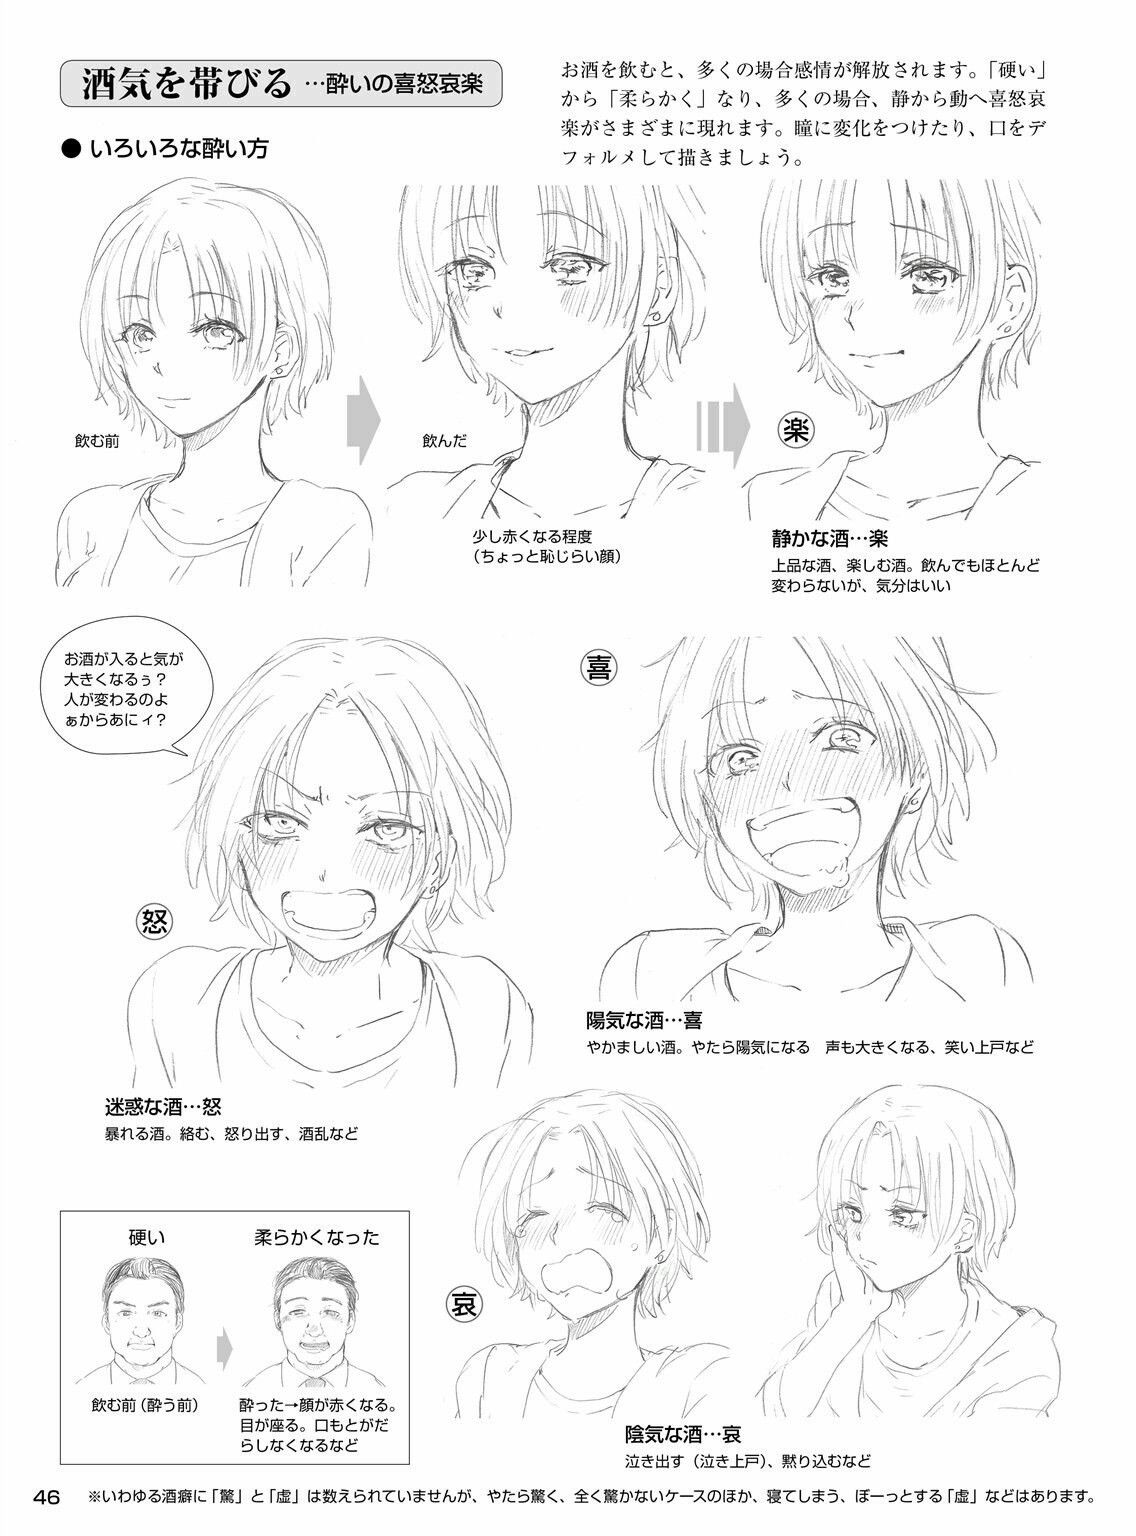 Manga drawing tutorials image by brandy on howto express